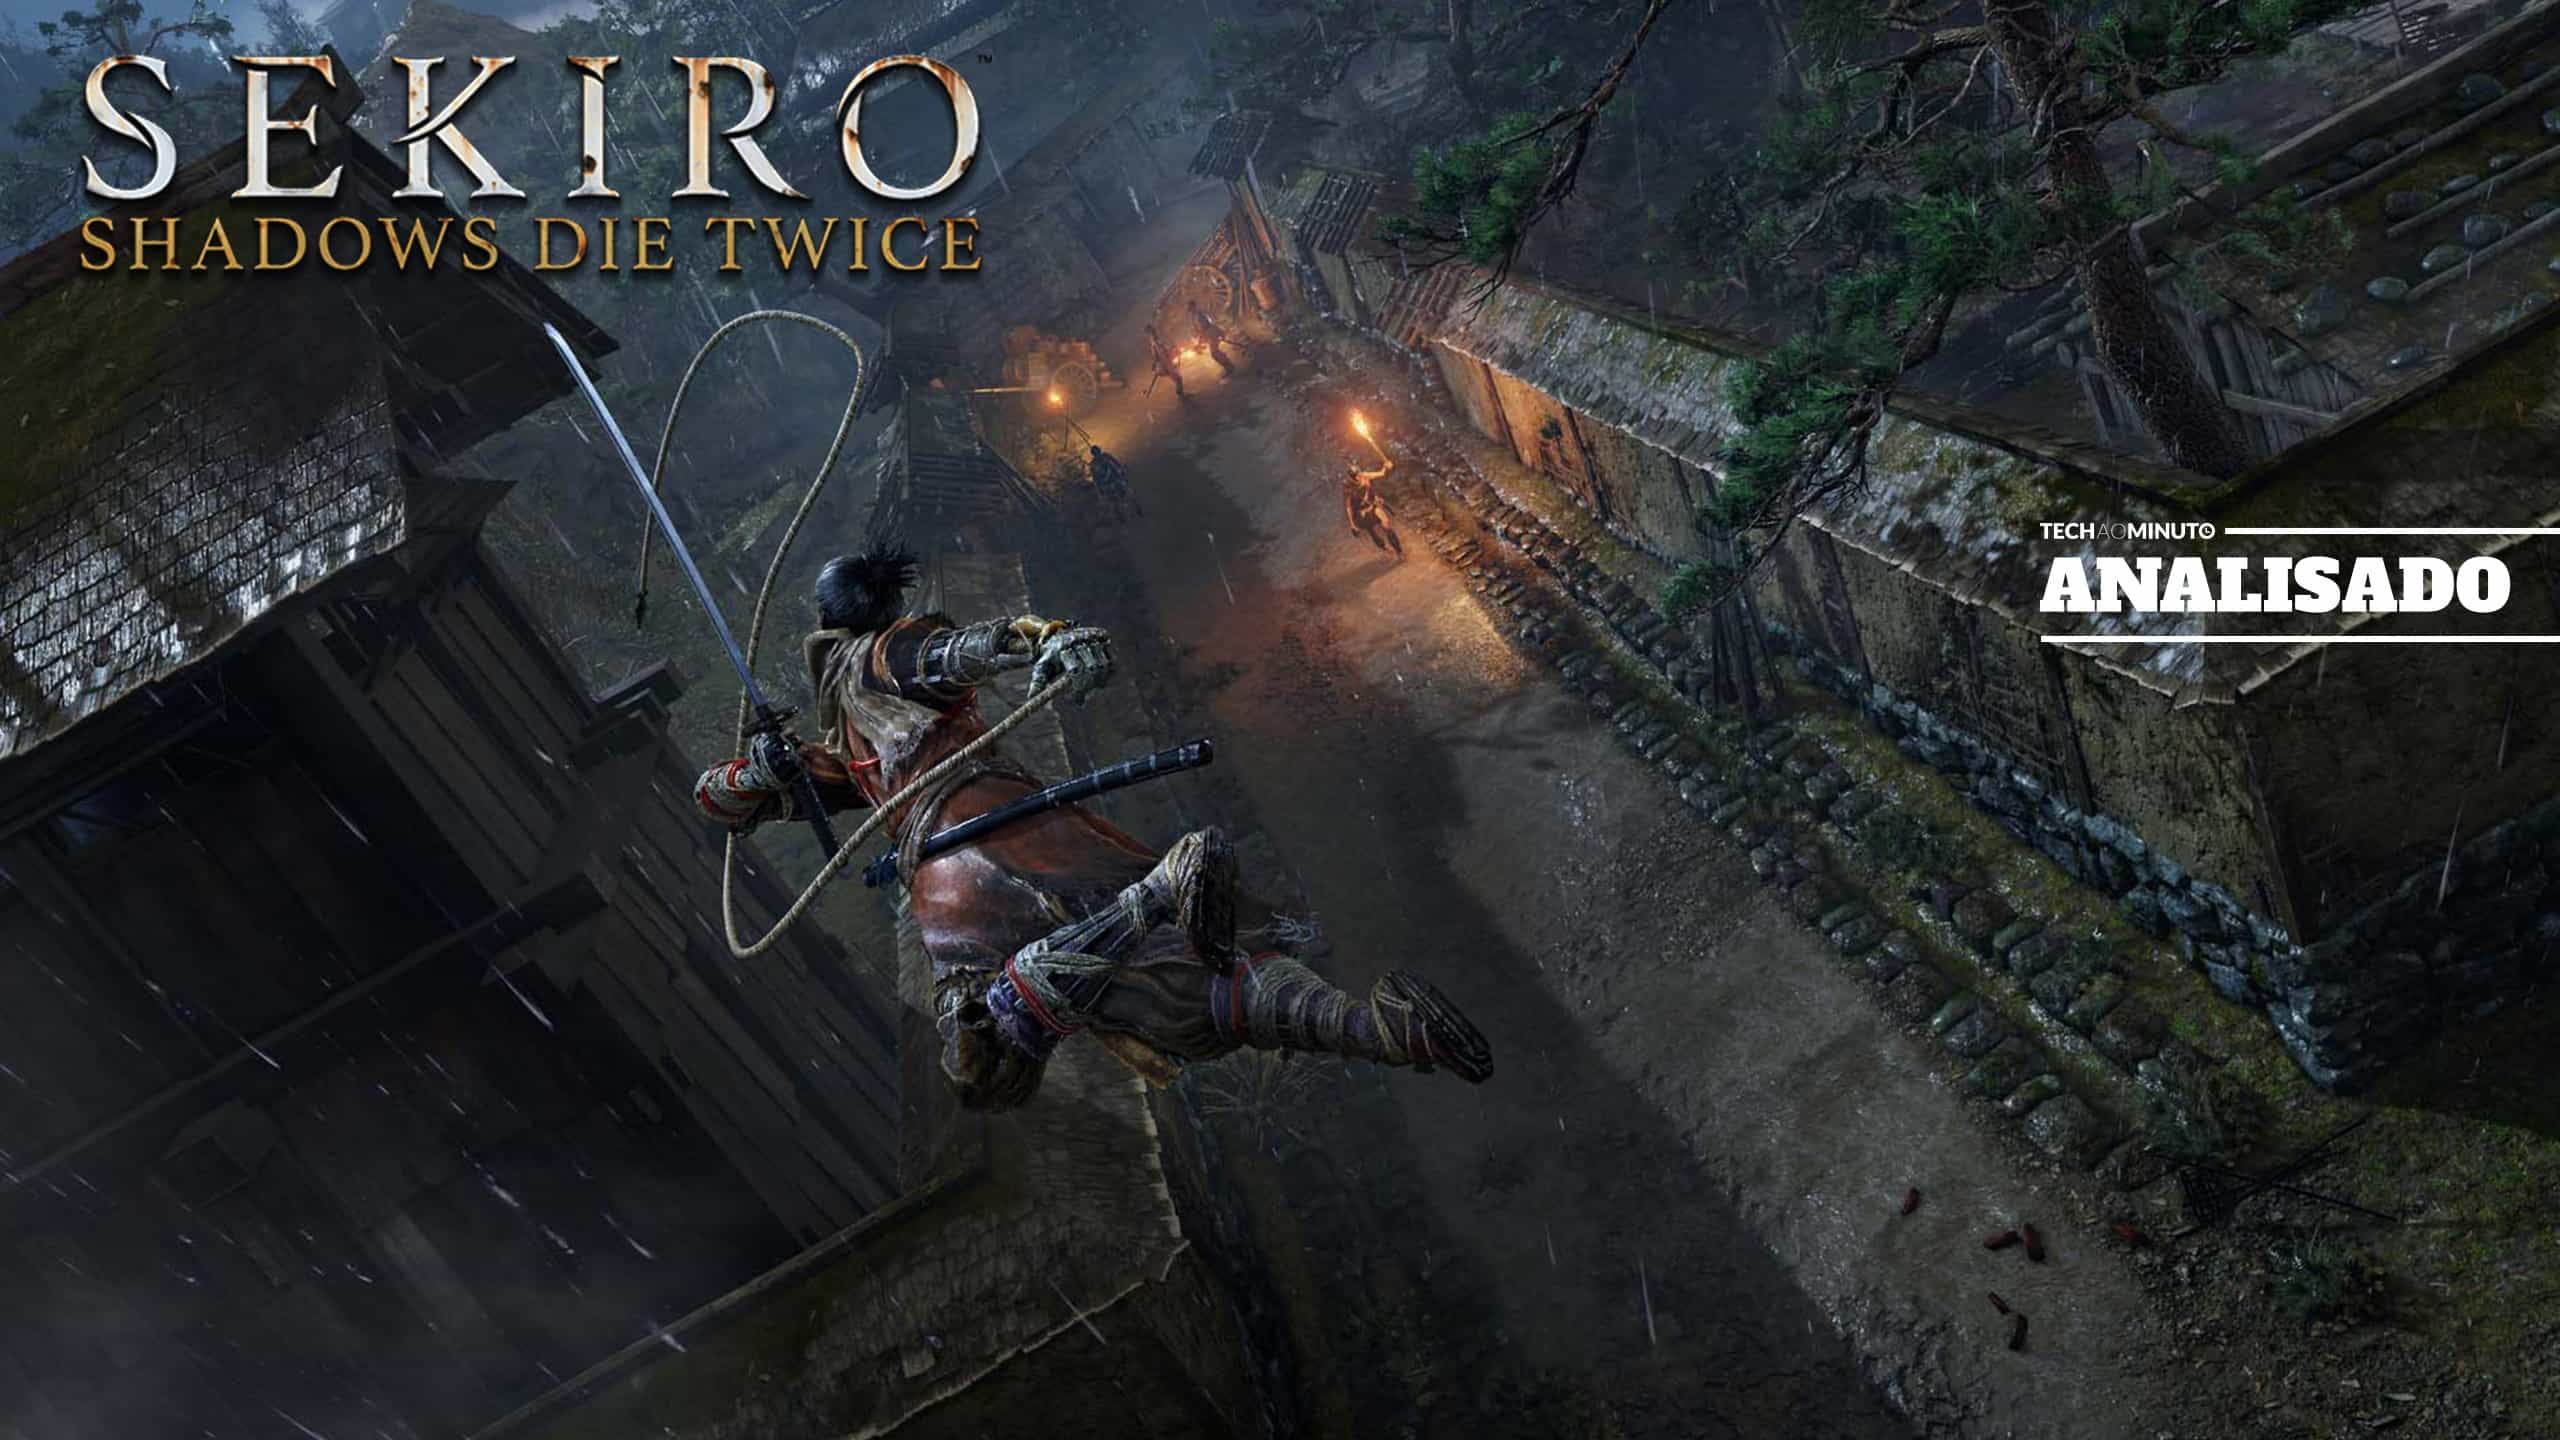 'Sekiro: Shadows Die Twice'. Está à altura do desafio?